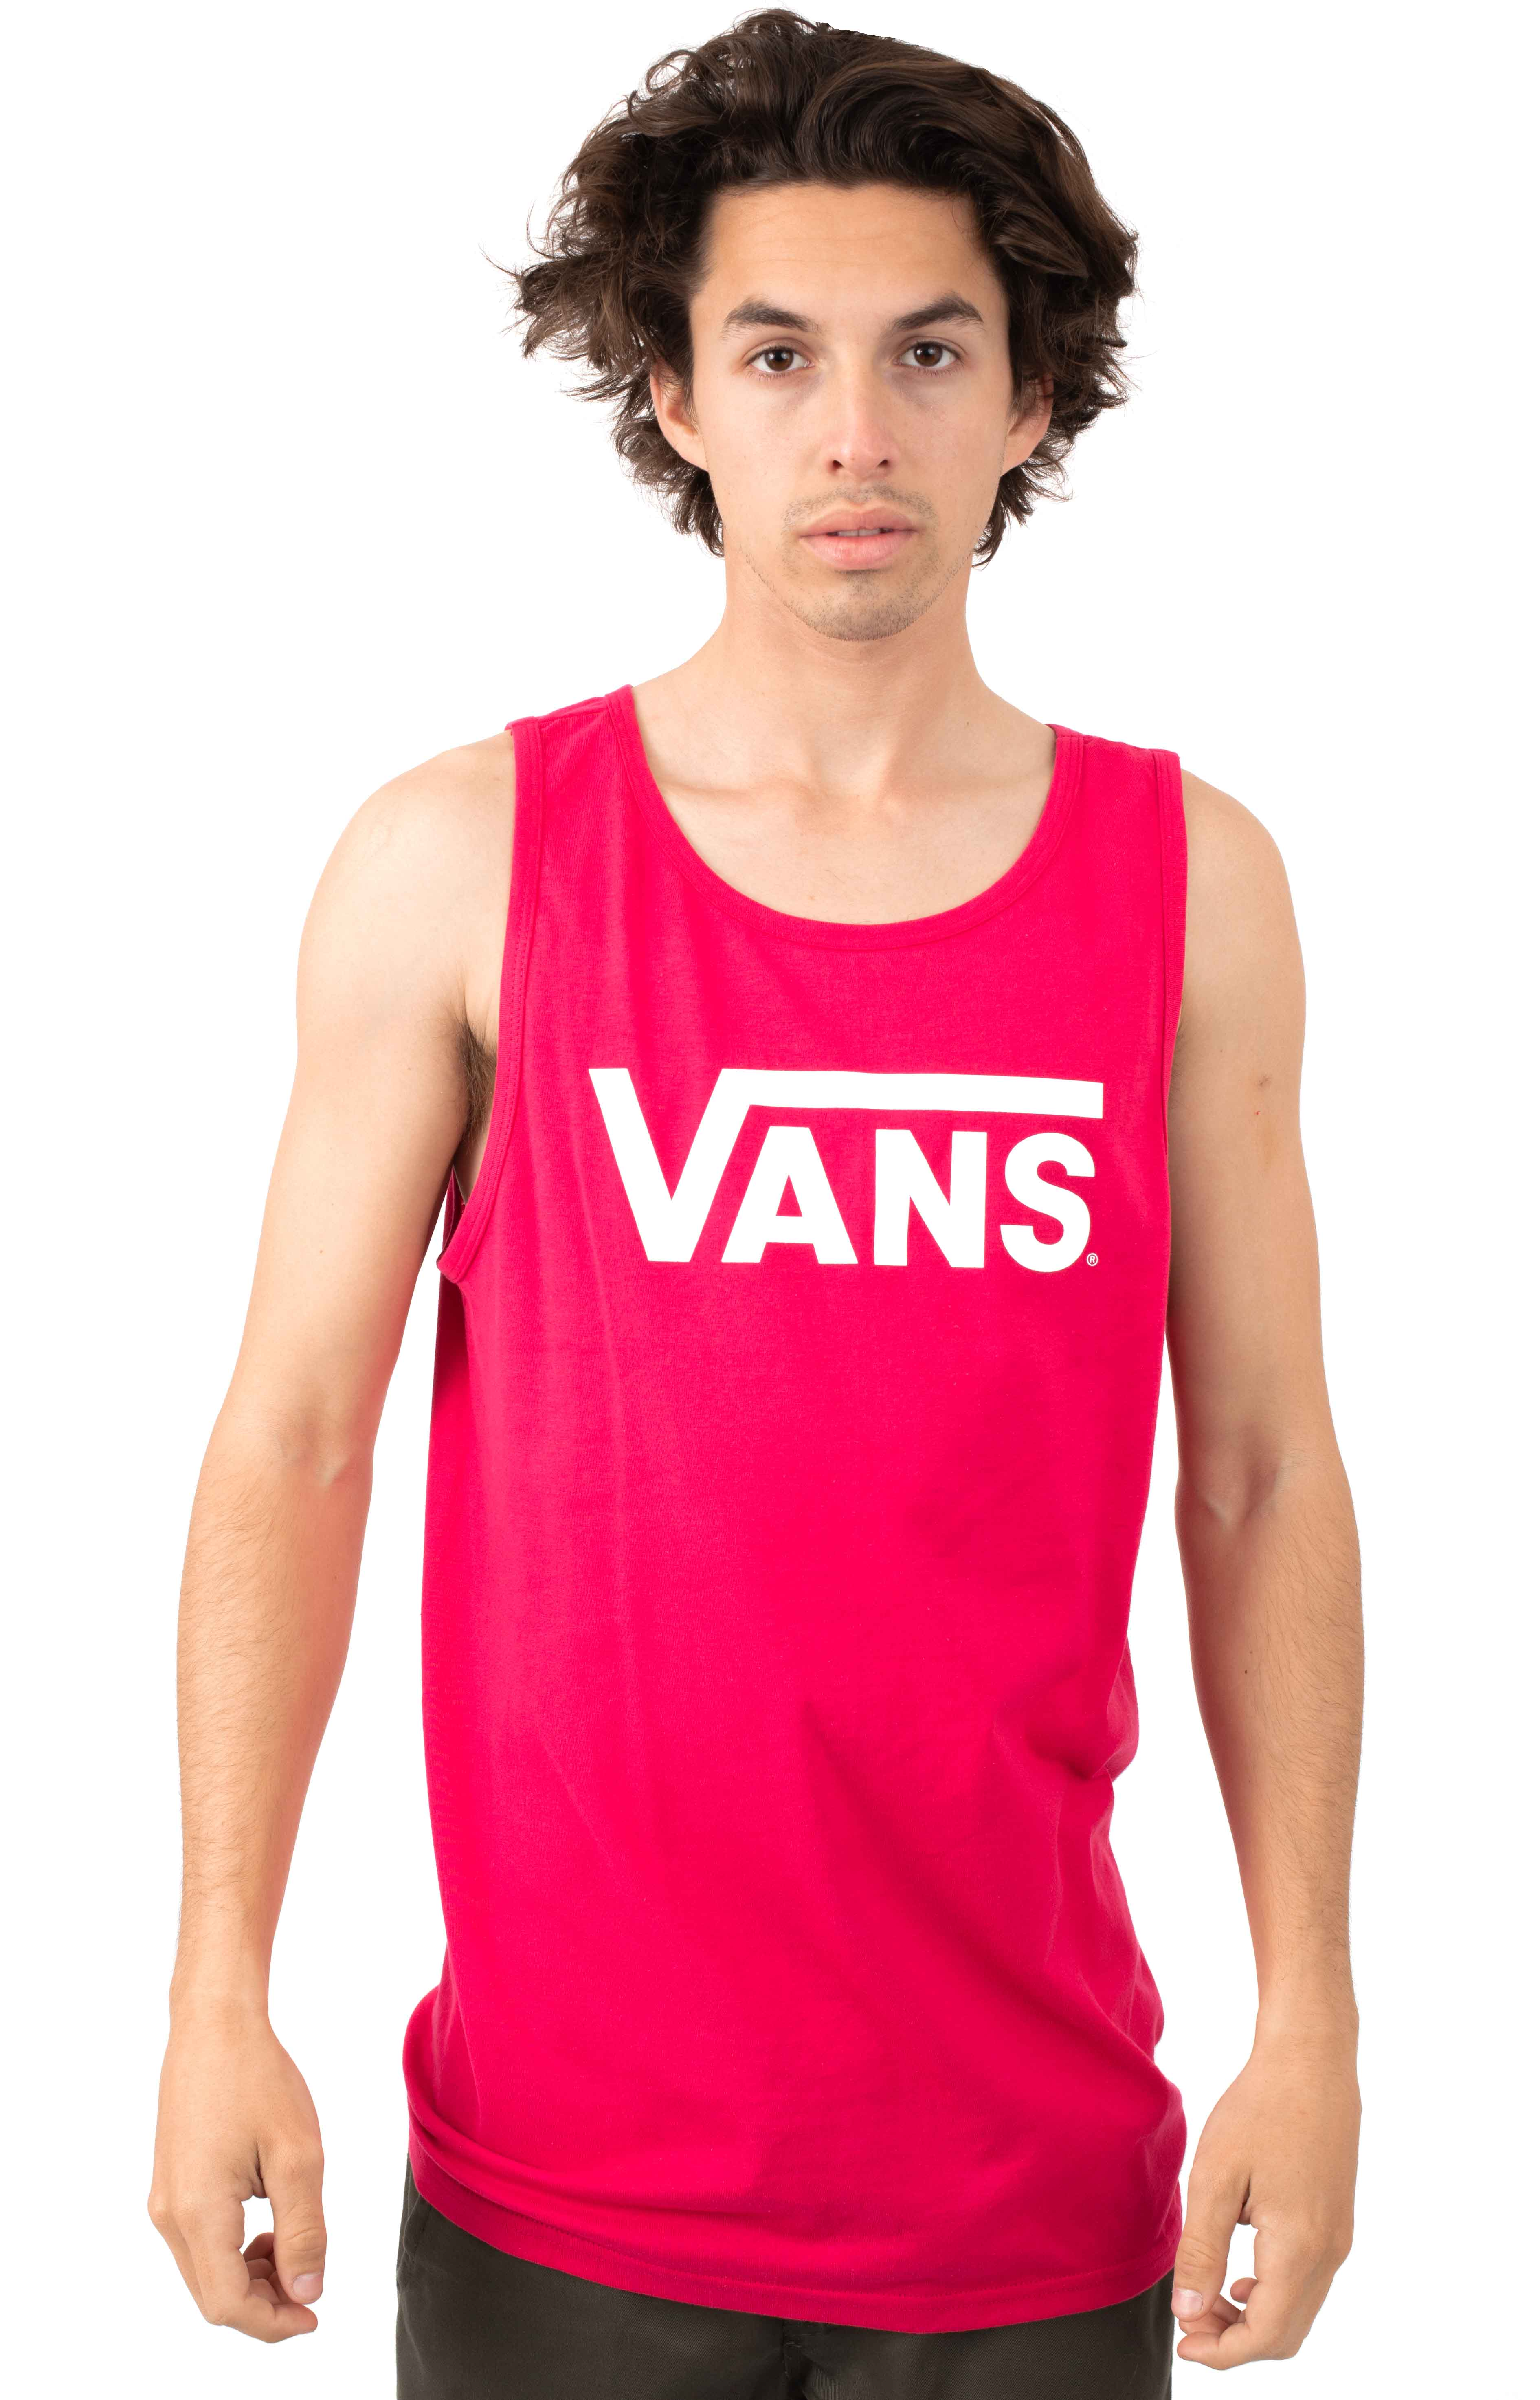 Vans Classic Tank Top - Jazzy/White